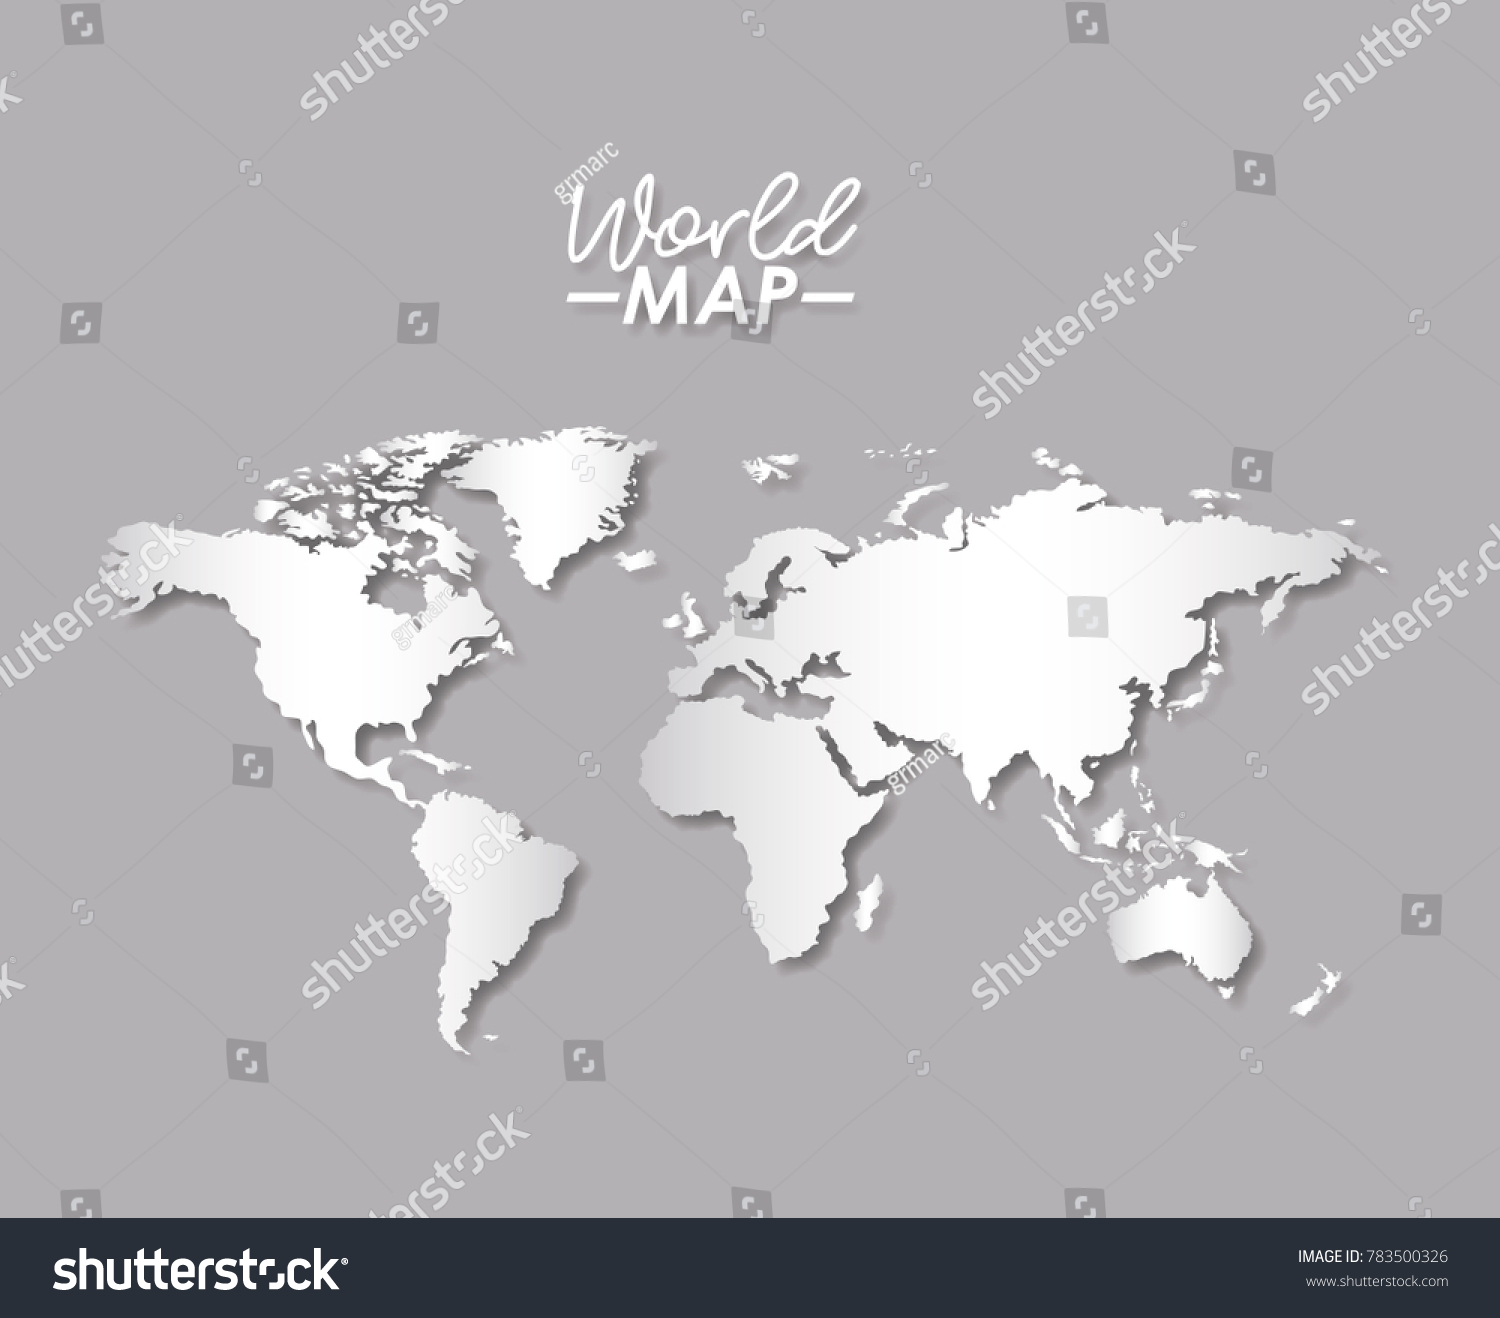 World map grayscale color silhouette stock photo photo vector world map in grayscale color silhouette gumiabroncs Image collections